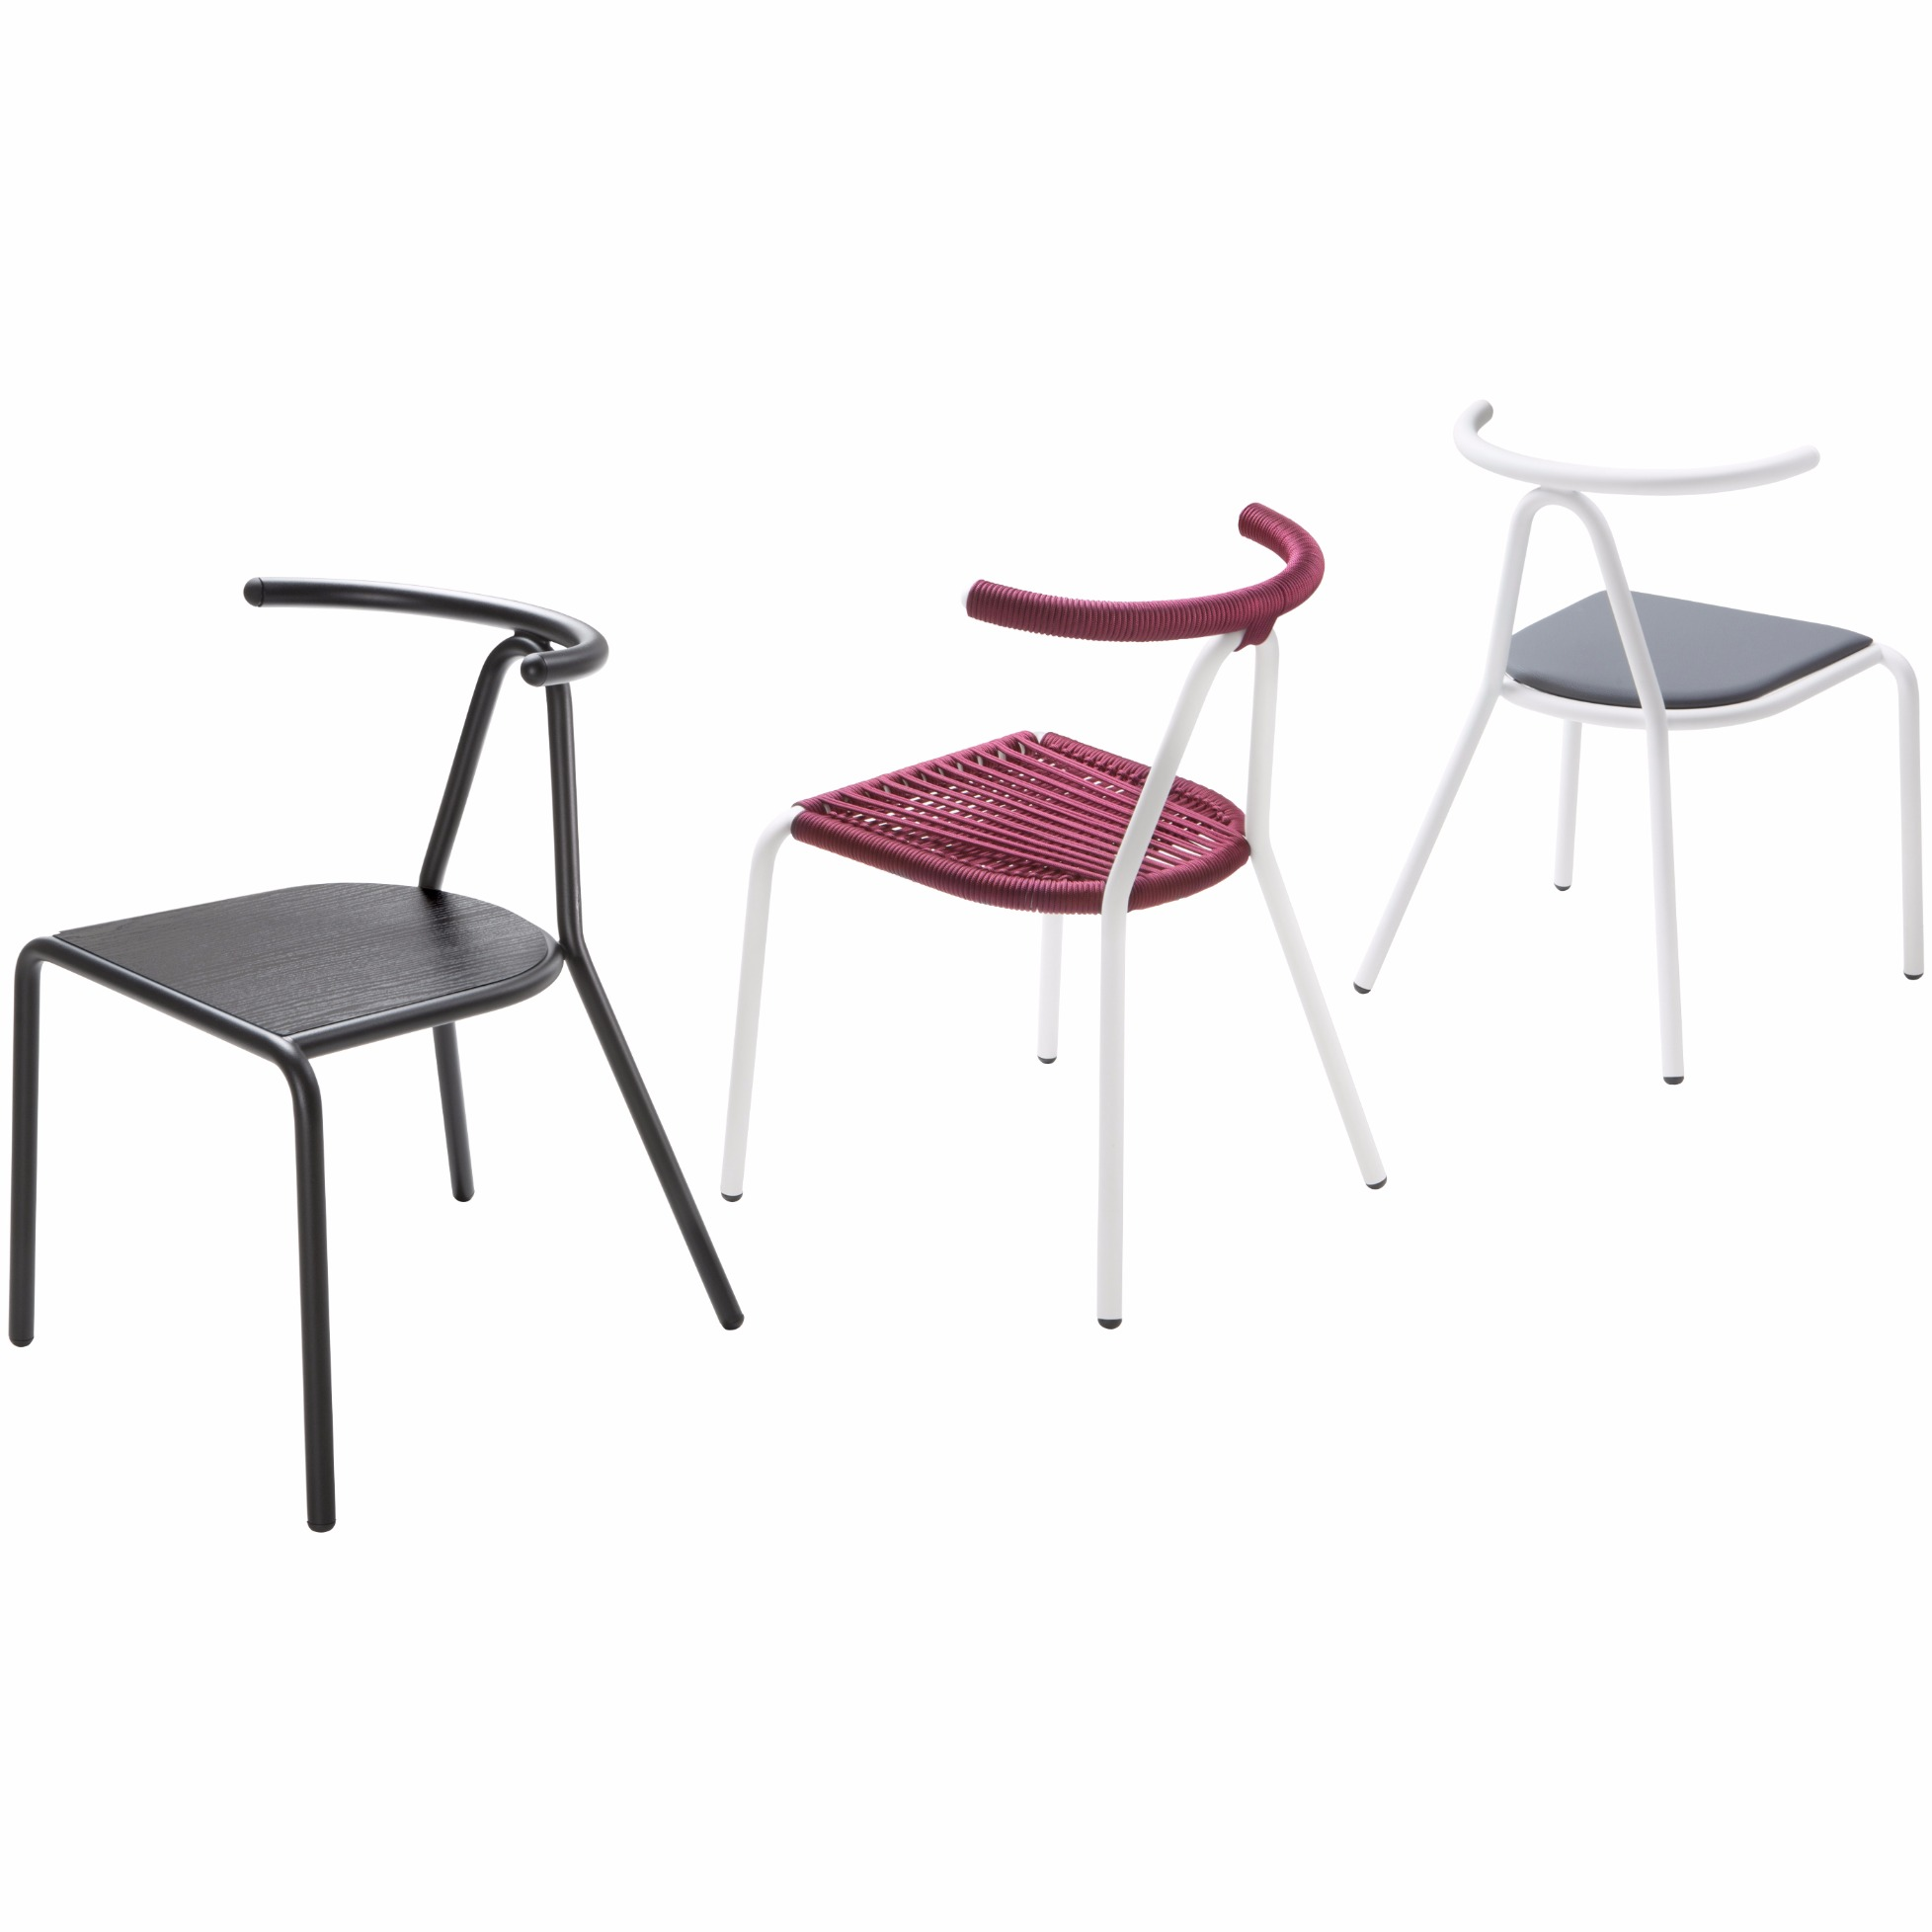 Design Stuhl Toro Chair Toro By B Line